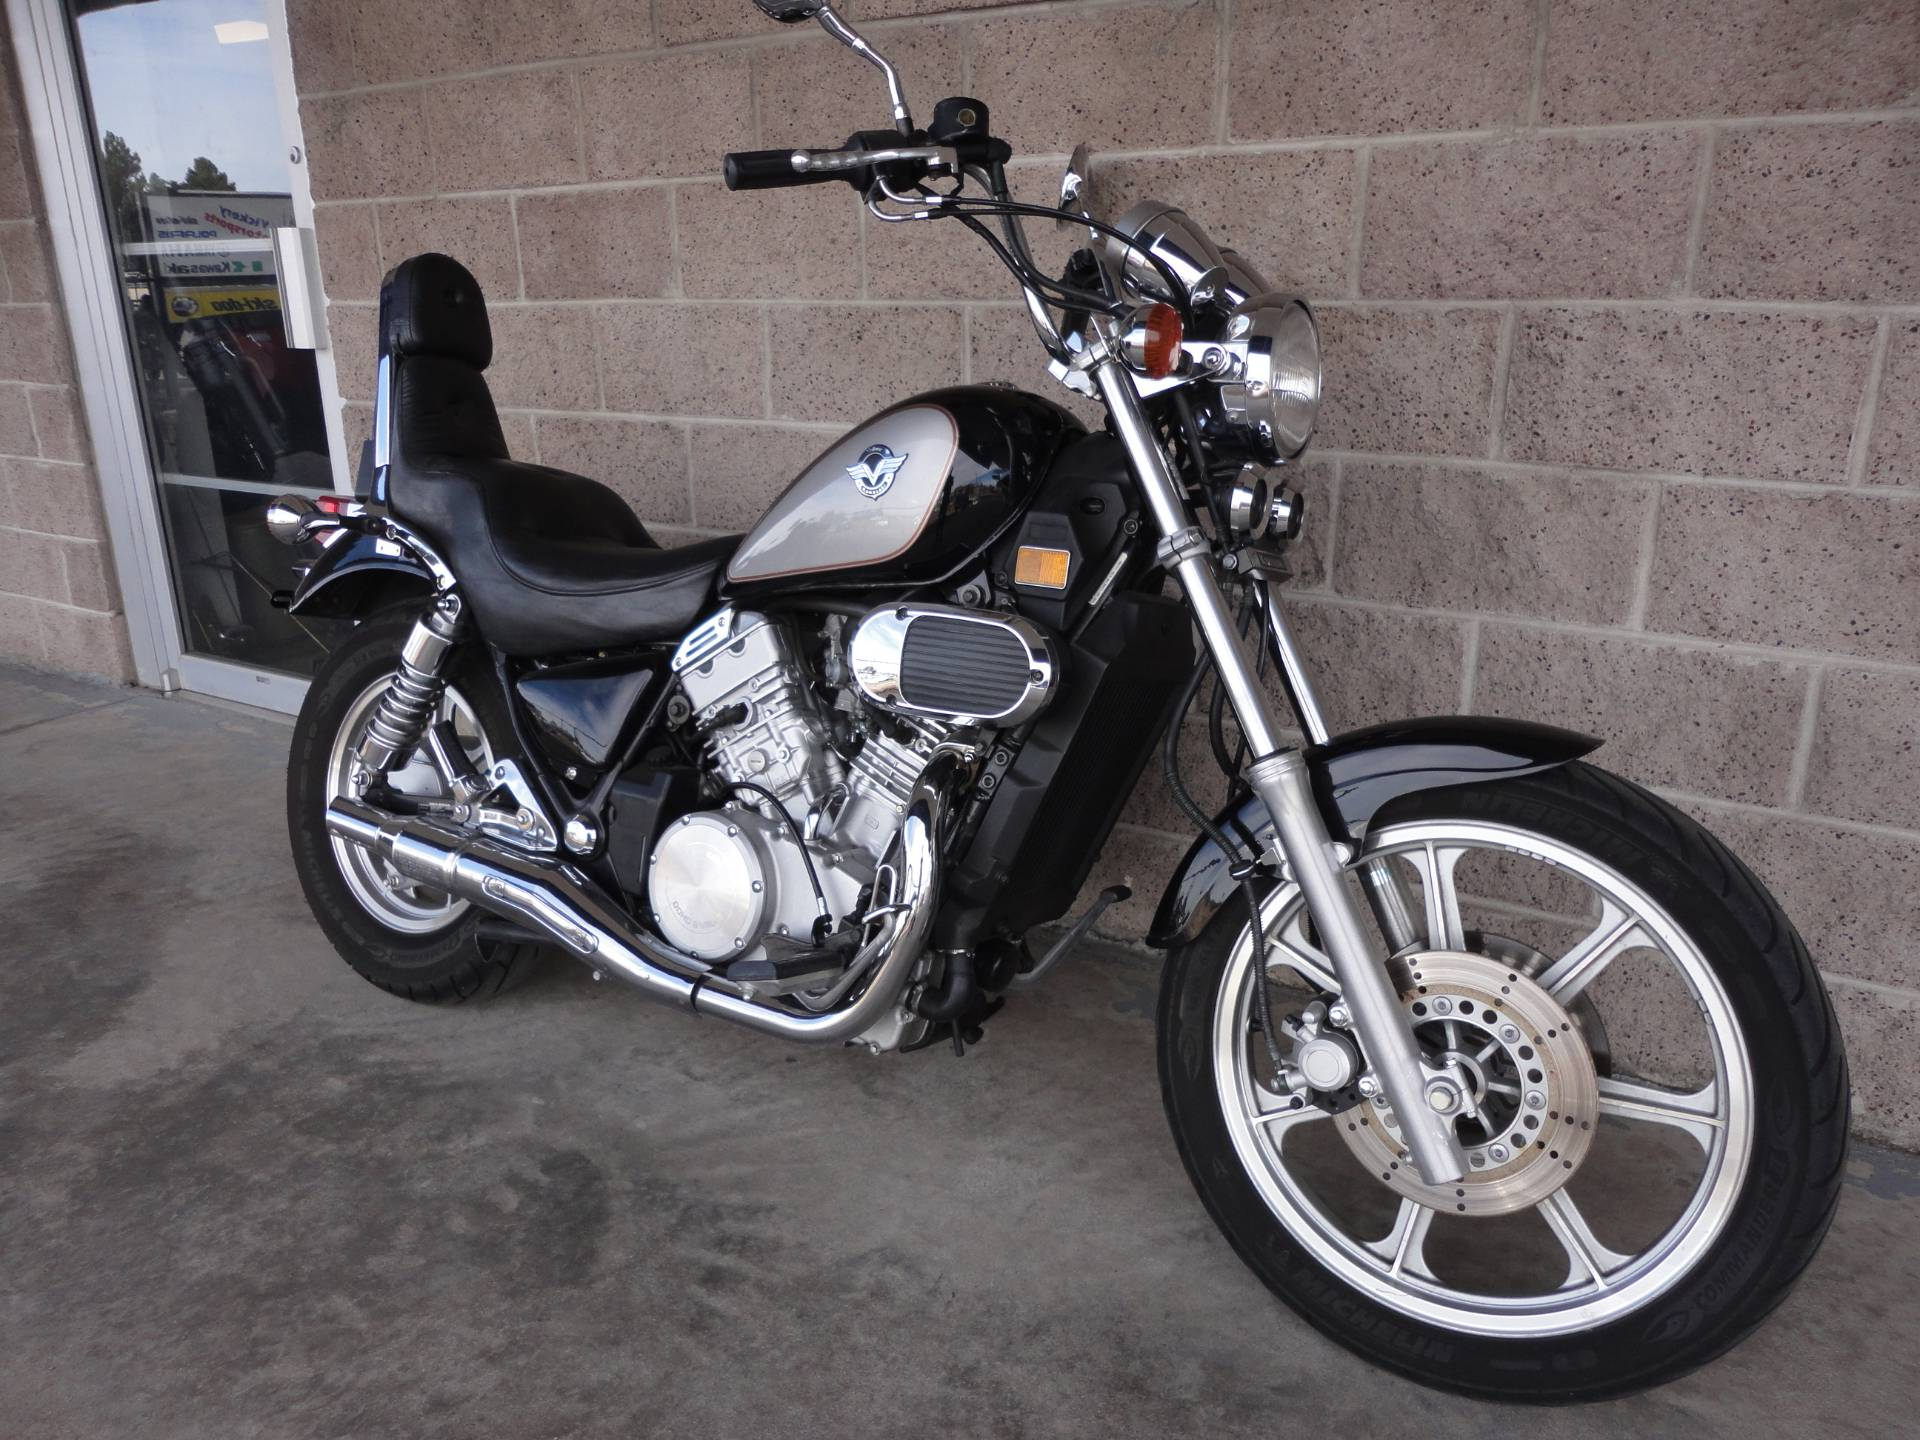 2002 Kawasaki Vulcan 750 in Denver, Colorado